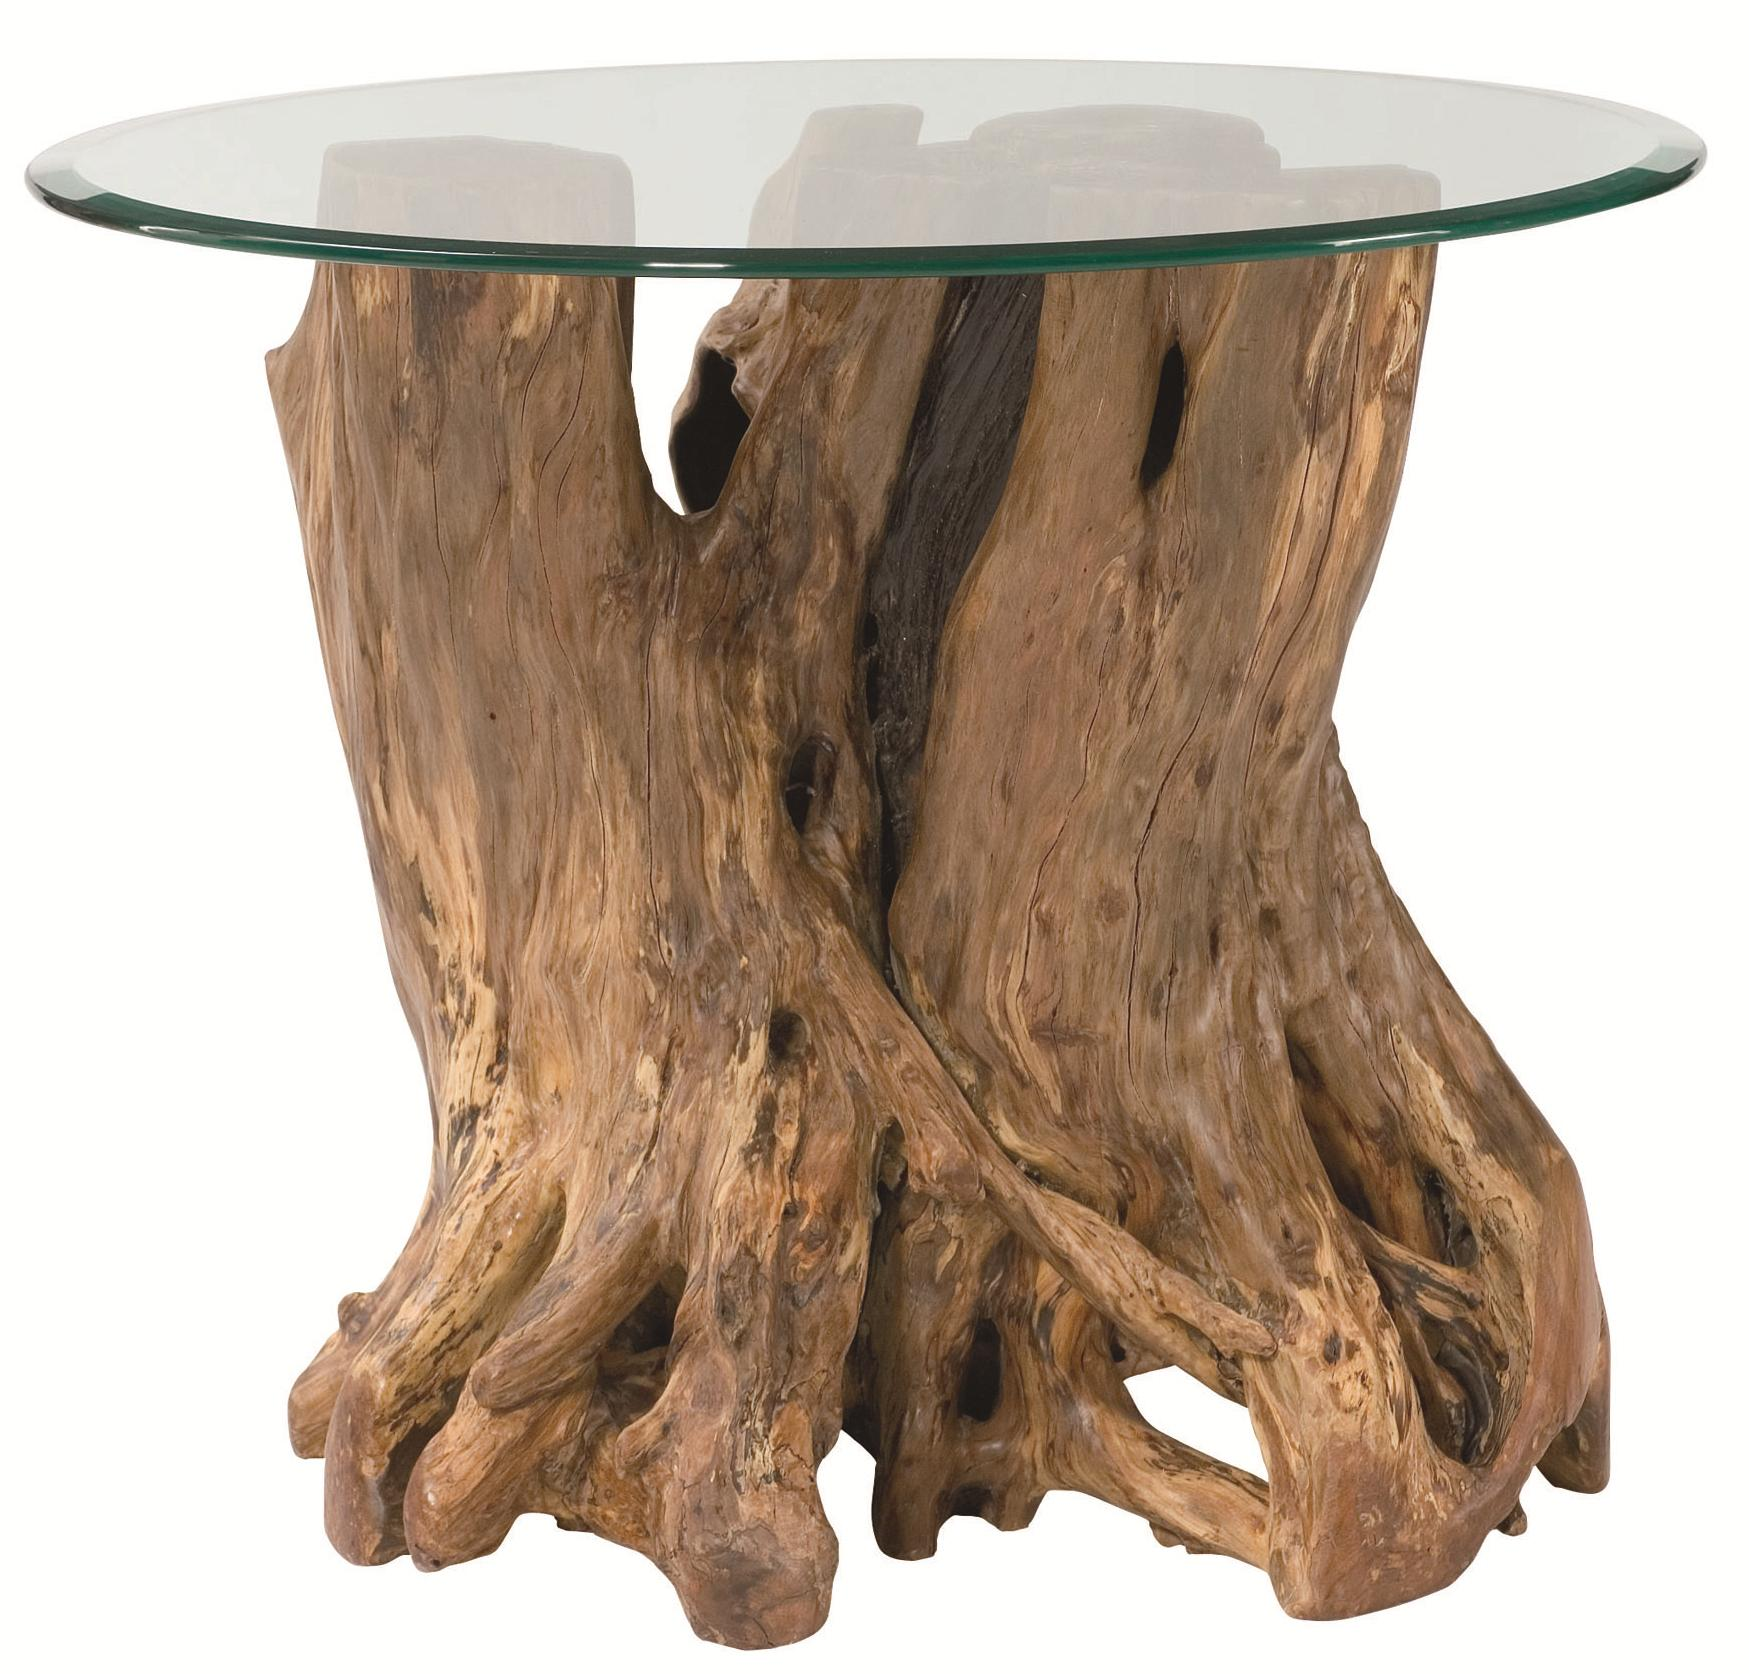 Hammary Hidden Treasures Root Ball End Table - Item Number: 090-556R